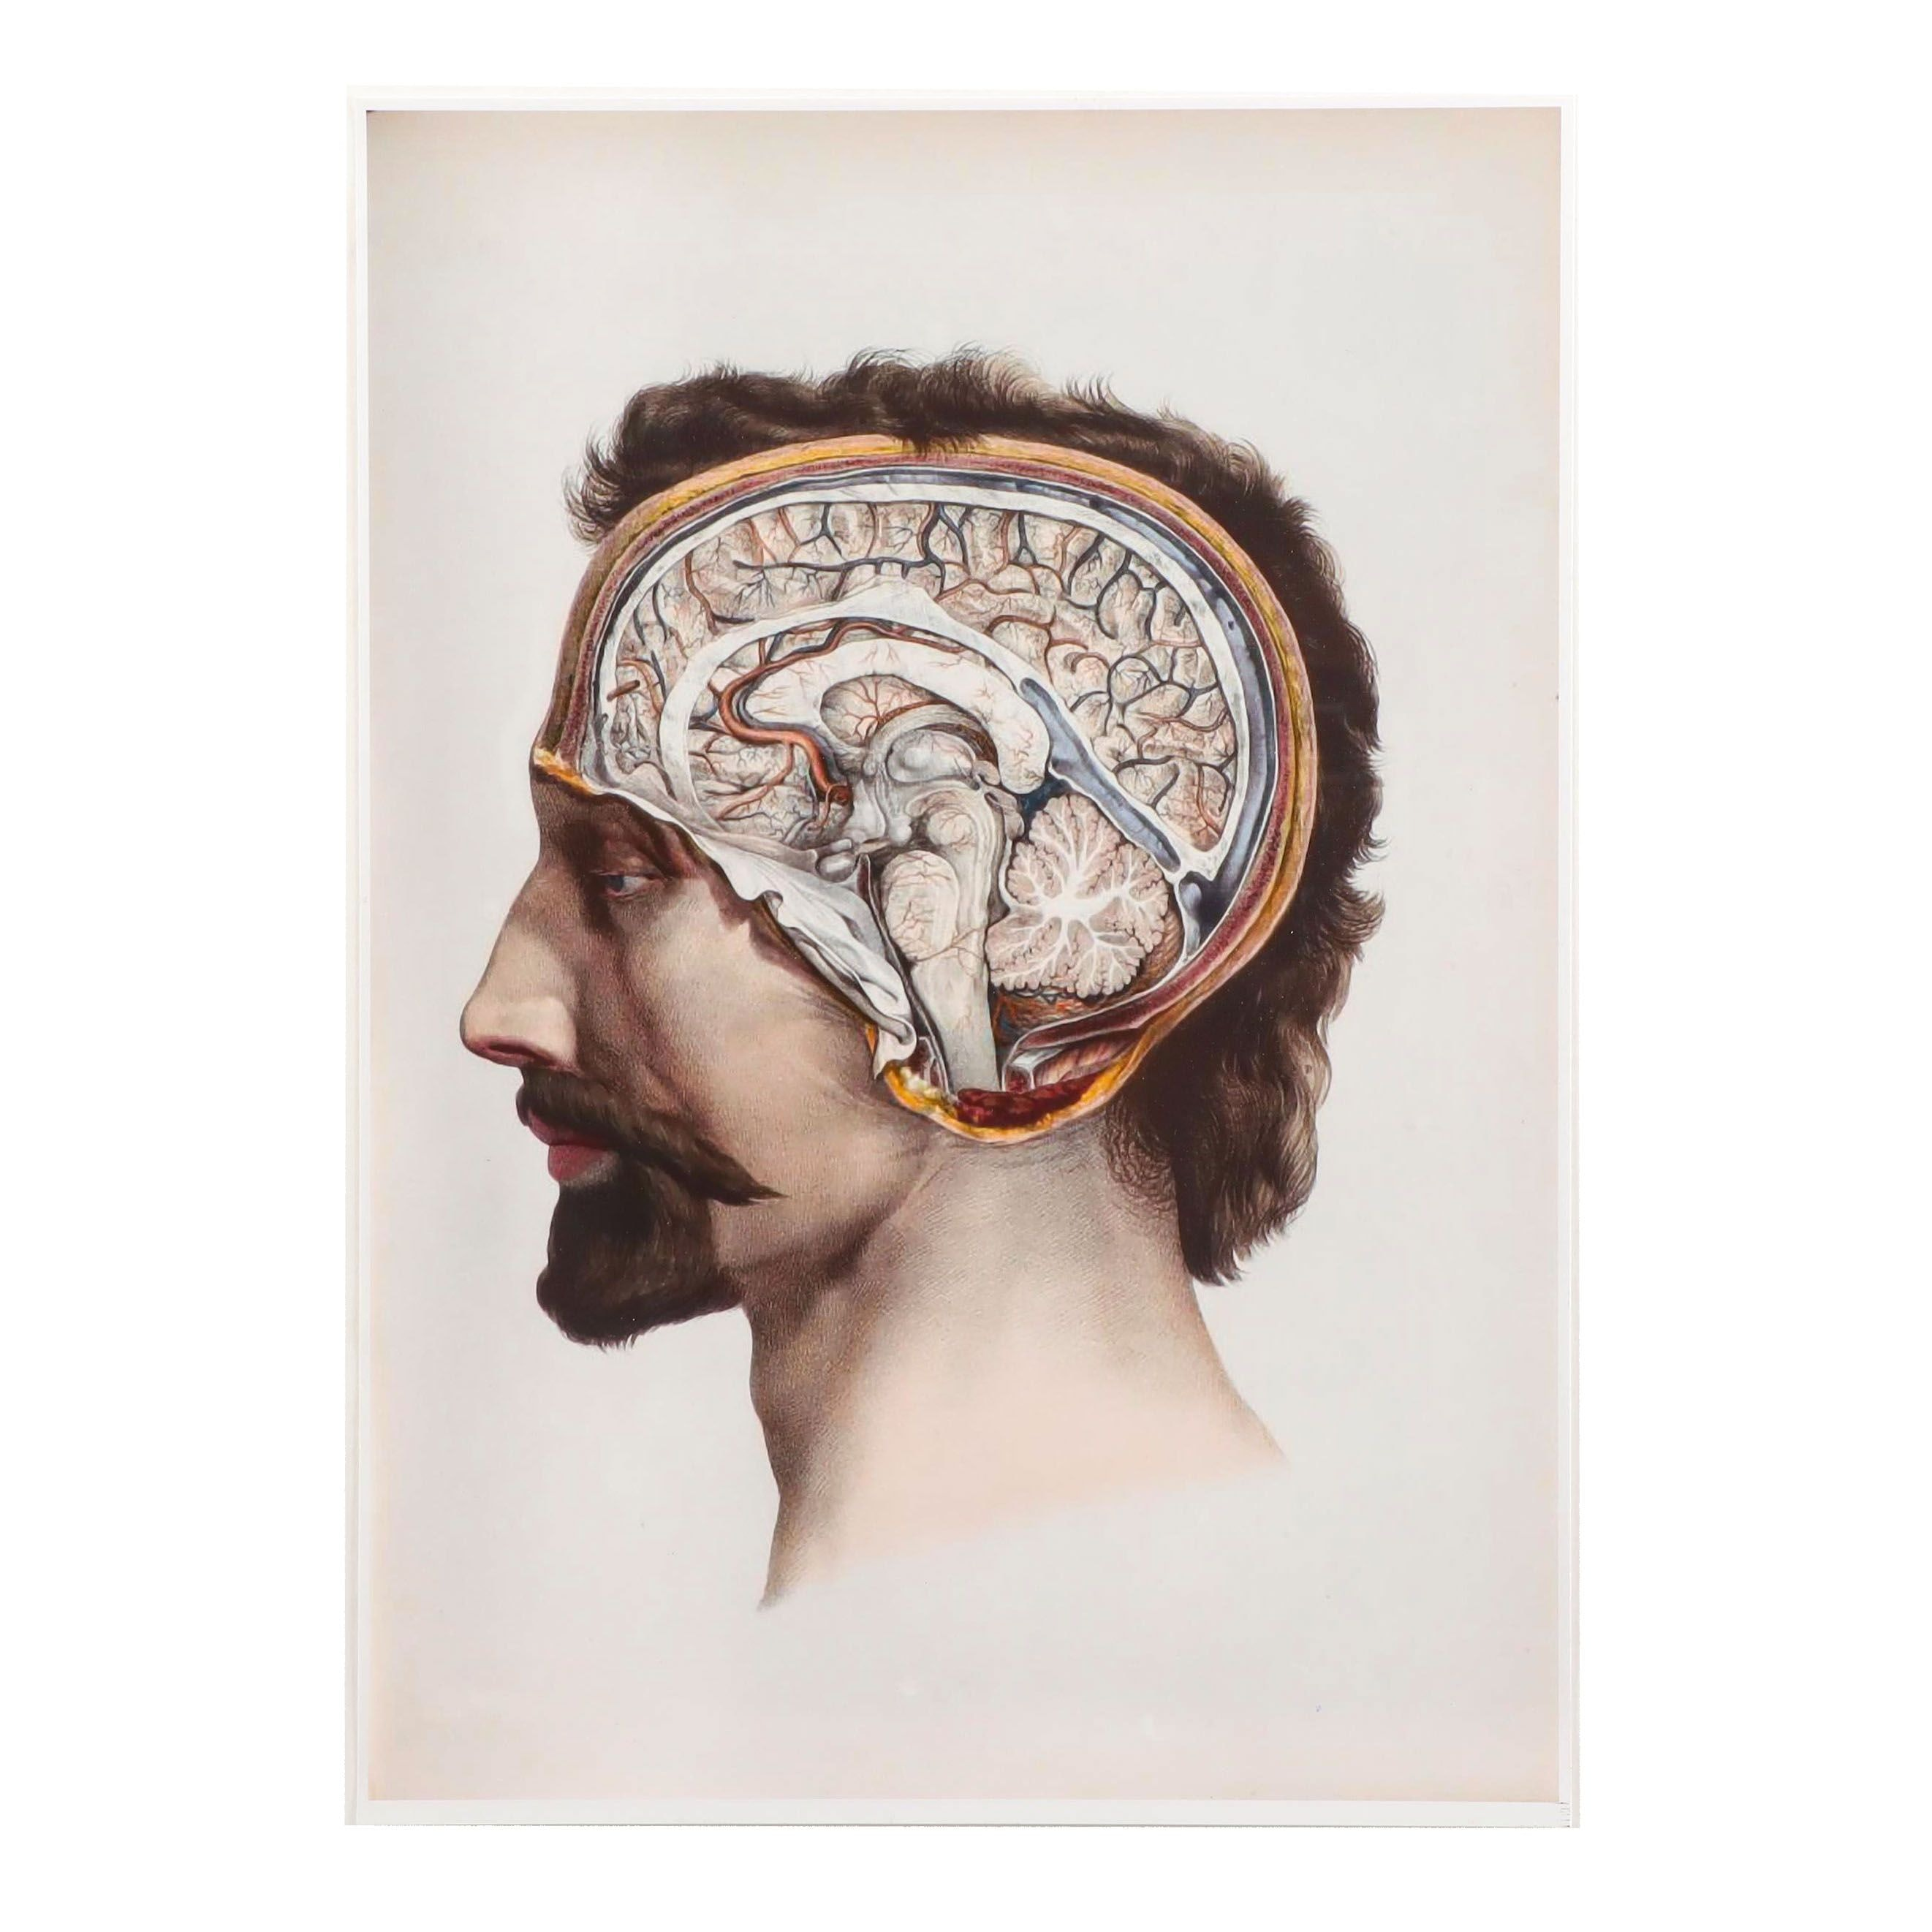 Giclee after 19th Century  Medical Illustration of Human Brain